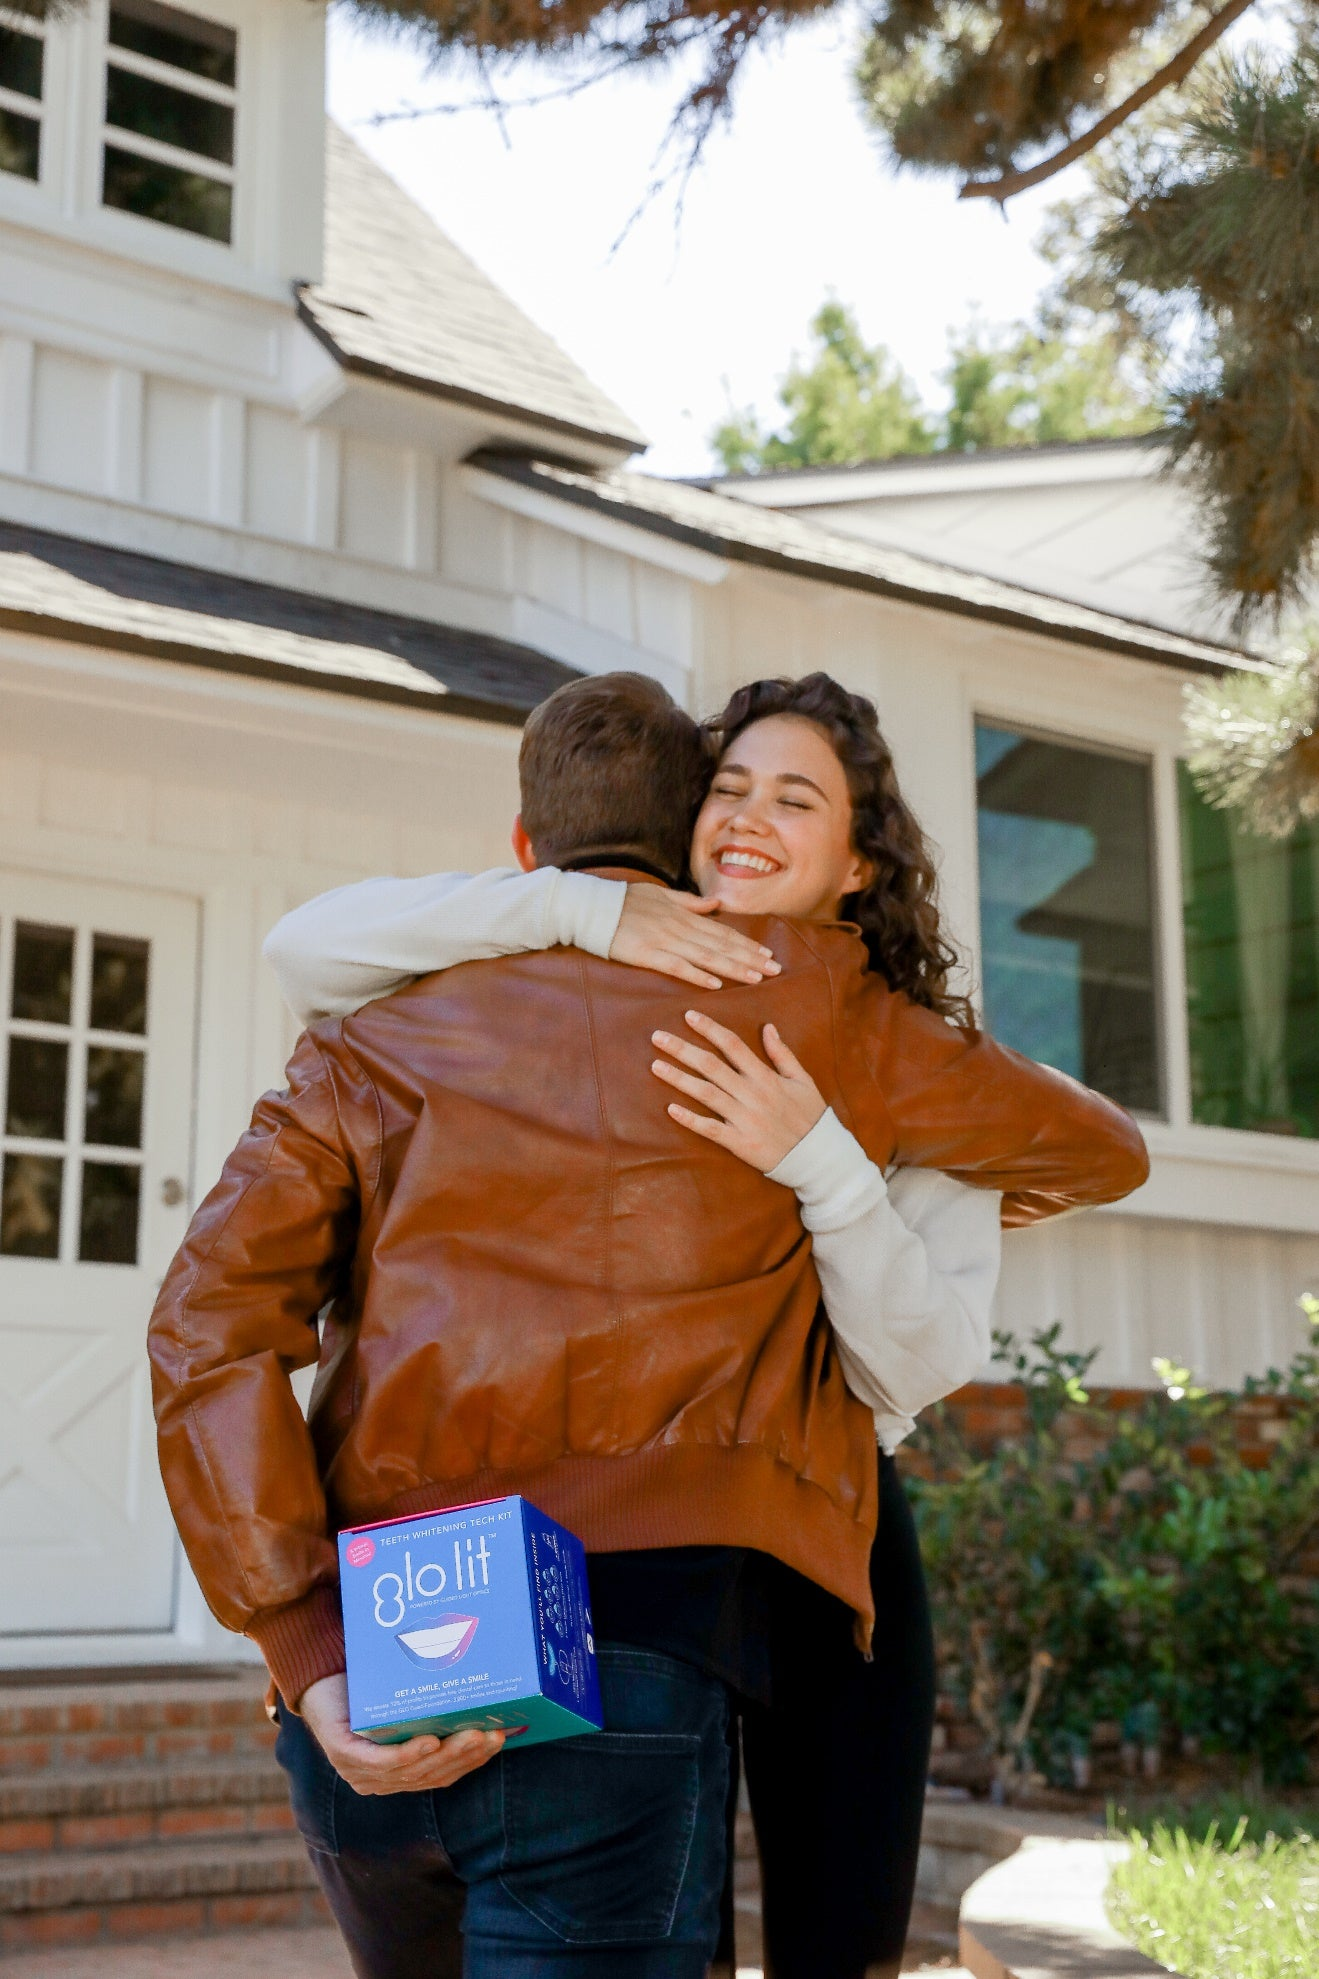 Man and woman hugging in front of a house while the man holds a GLO Lit teeth whitening system box behind his back.